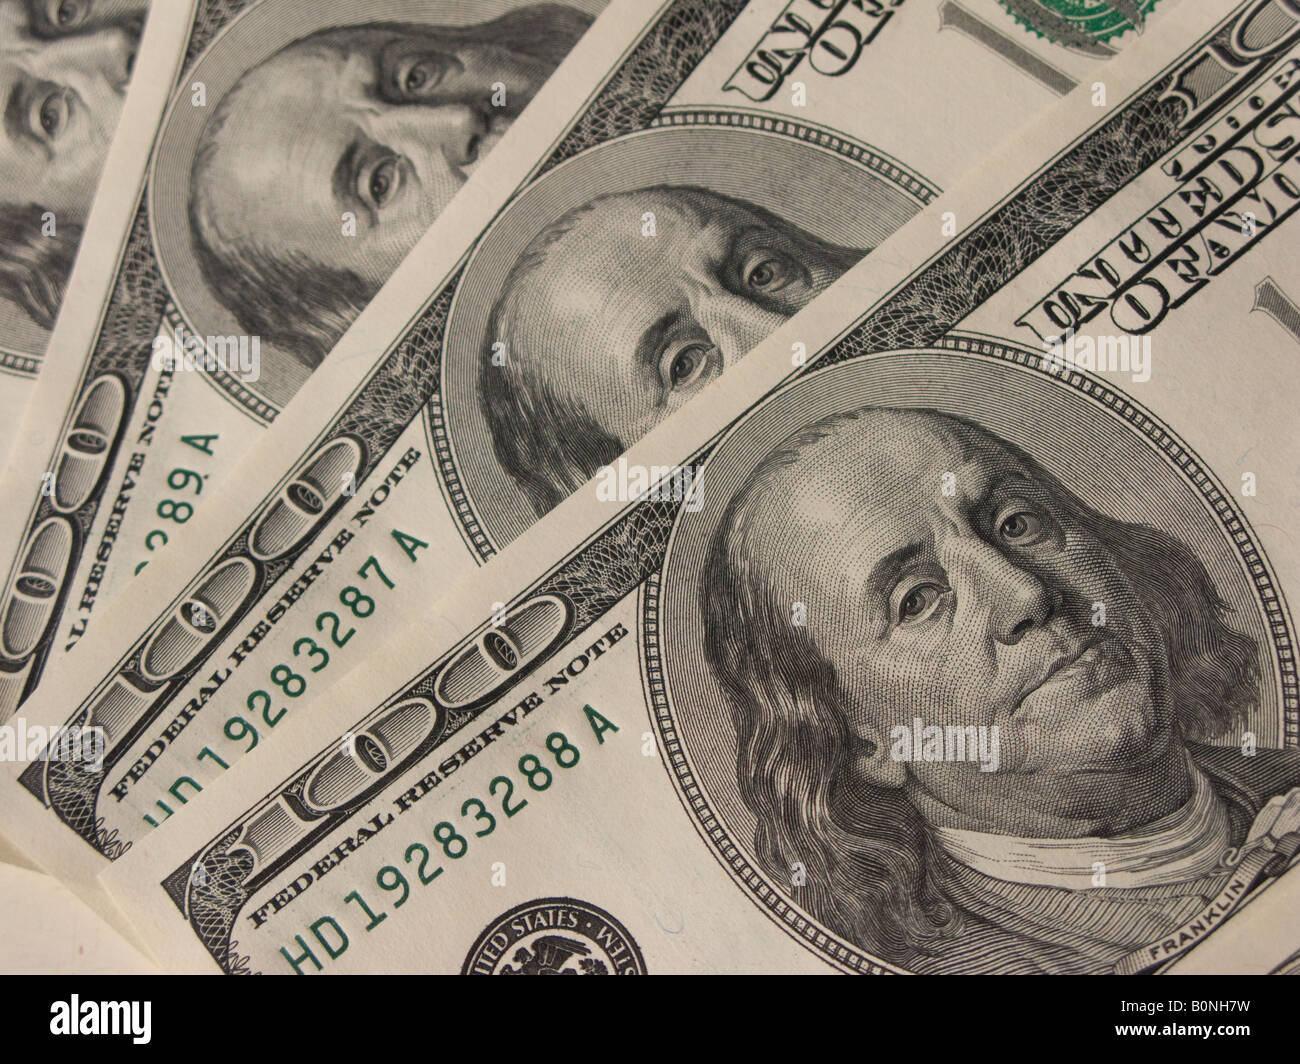 banknote one hundred dollars - Stock Image